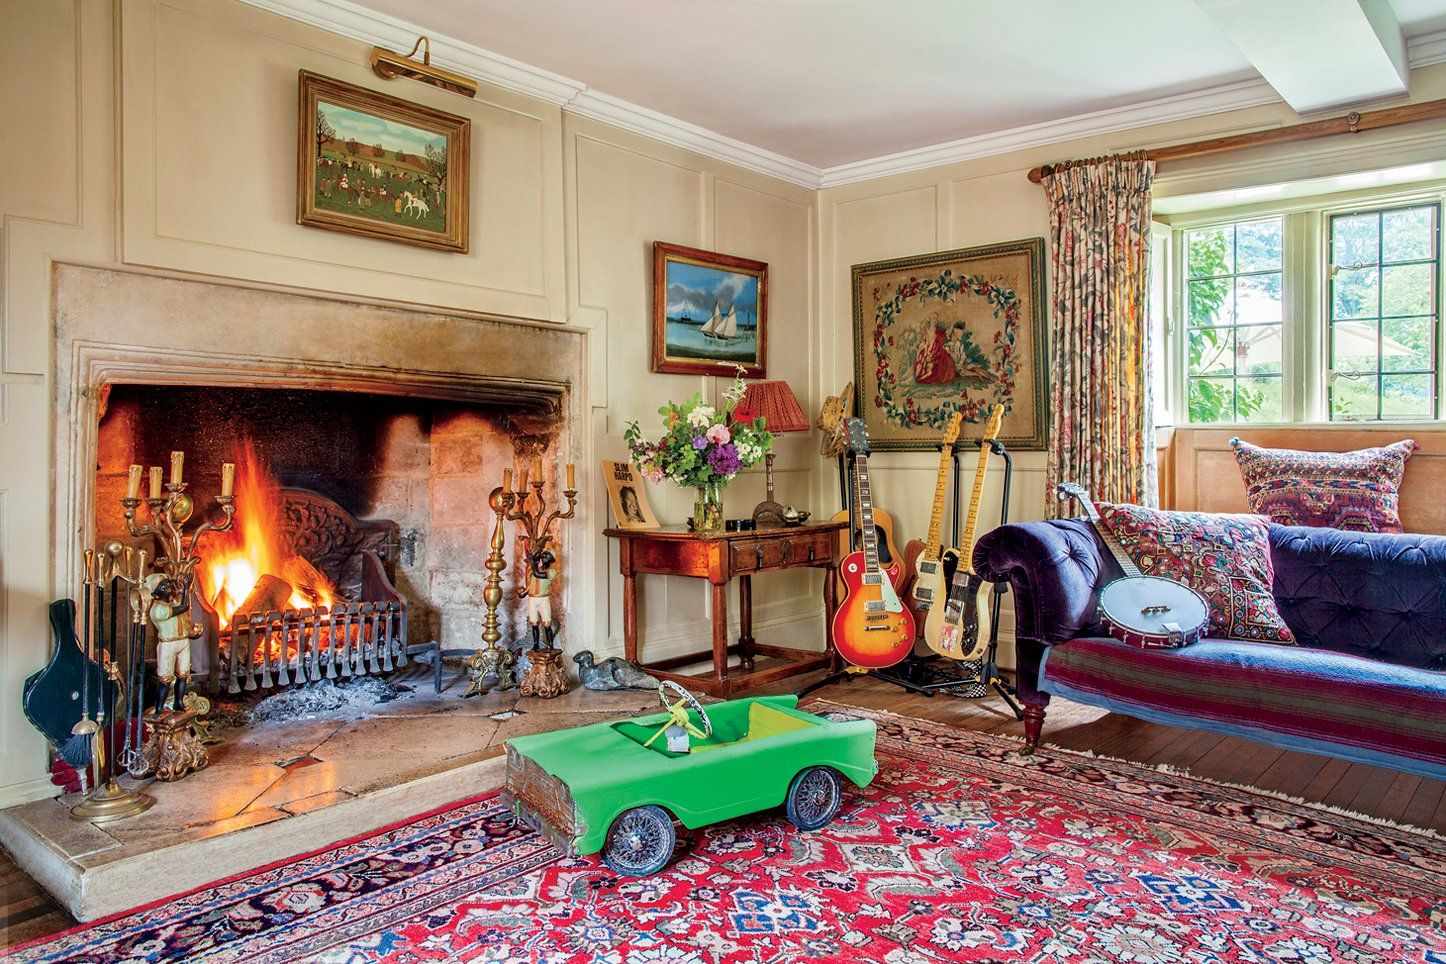 A Look at 24 Fireplaces in  Vogue   www.lab333.com  www.facebook.com/pages/LAB-STYLE/585086788169863  http://www.lab333style.com  https://instagram.com/lab_333  http://lablikes.tumblr.com  www.pinterest.com/labstyle